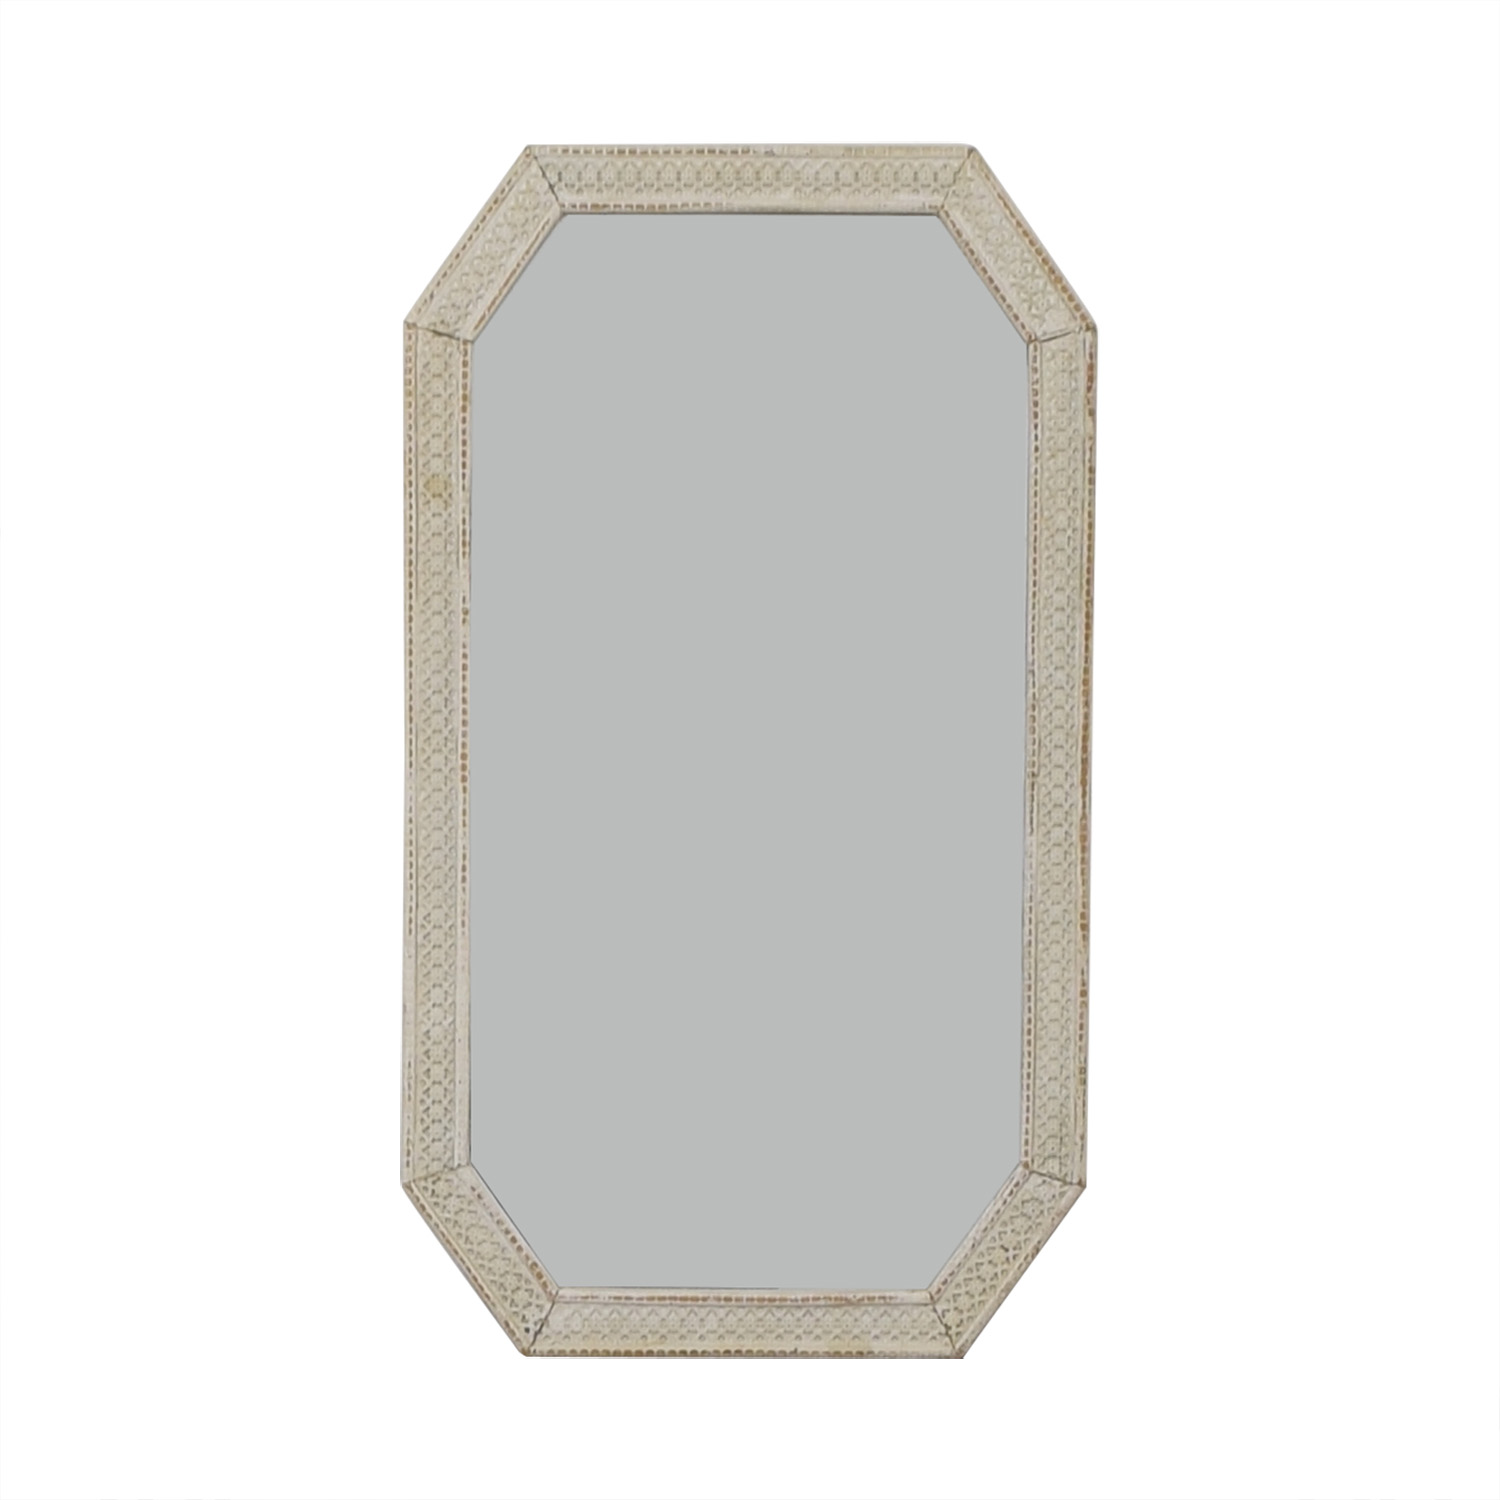 shop Distressed White Indian Lattice Wall Mirror  Decor